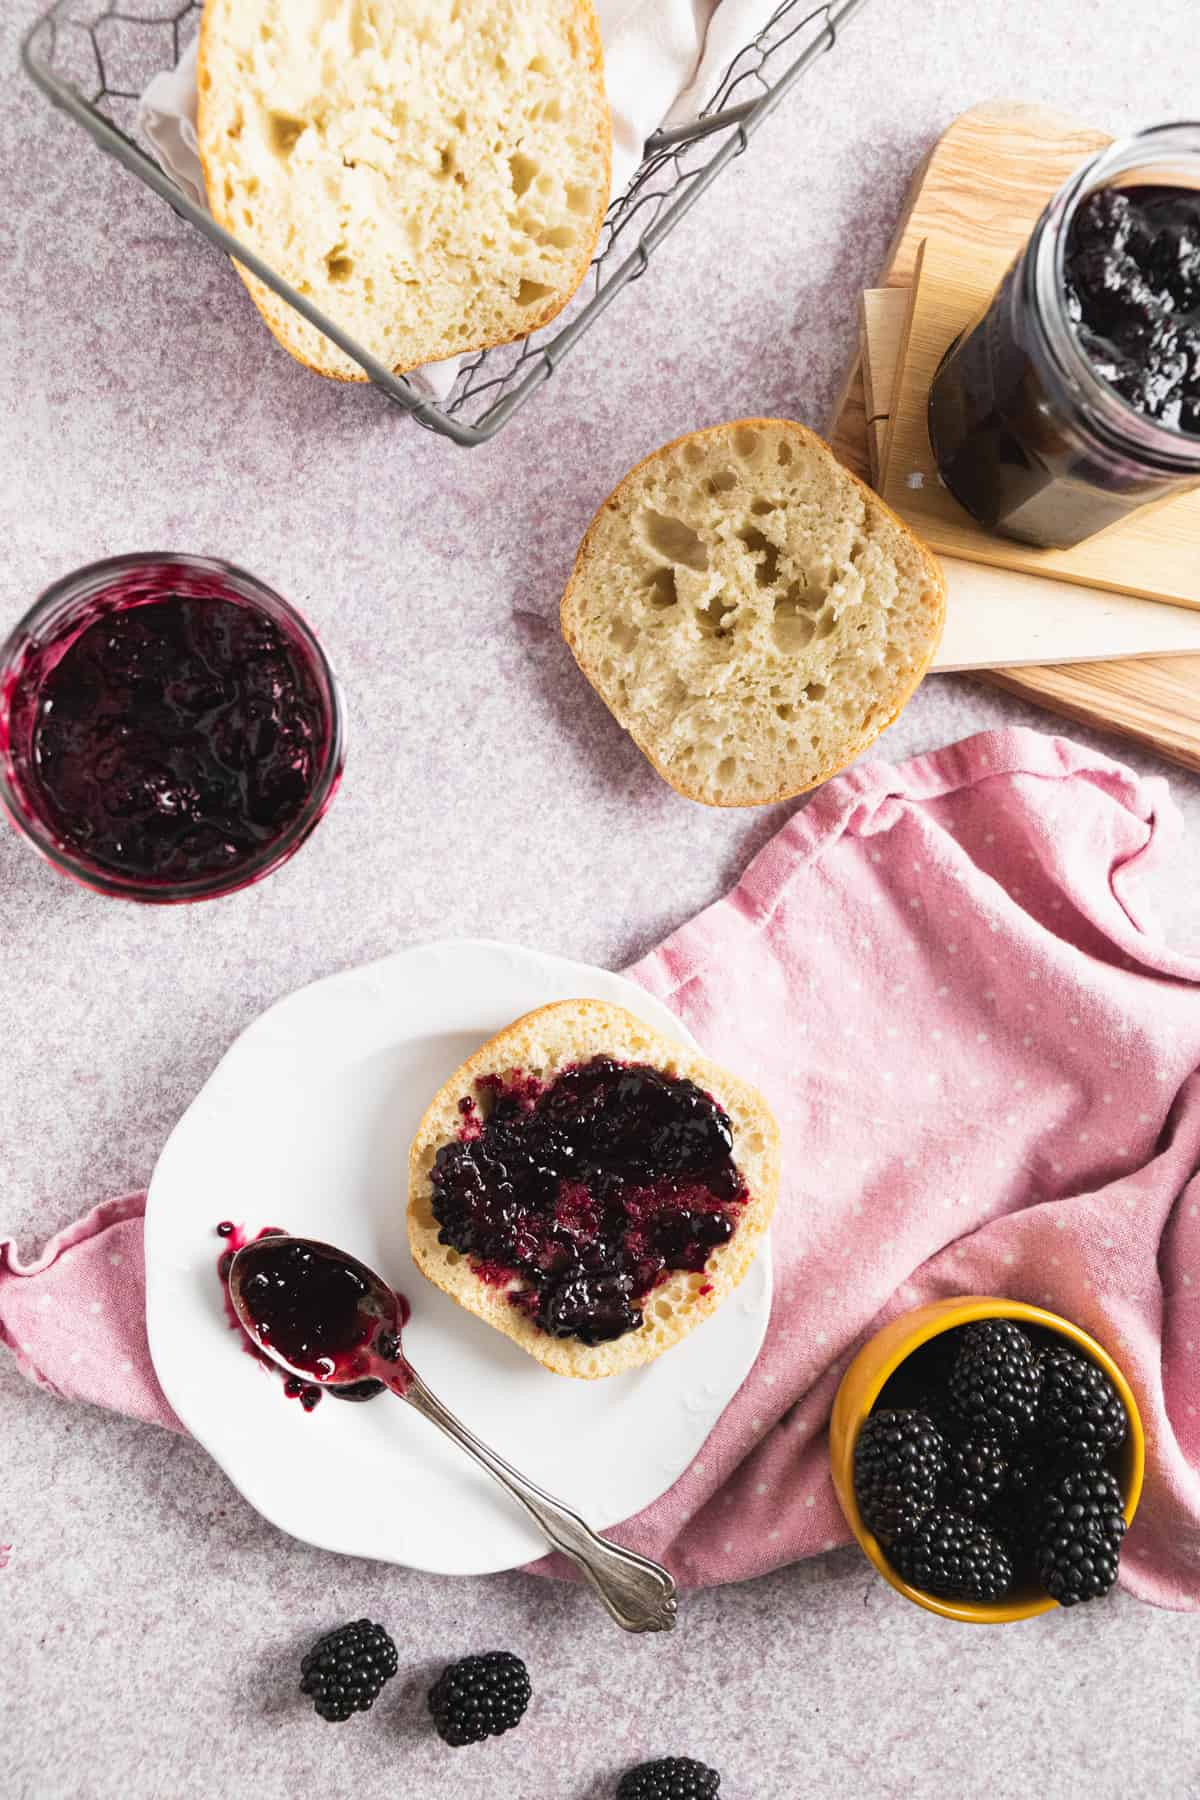 Top view of breakfast scene with bread and blackberry freezer jam on a slice of bread on a plate.